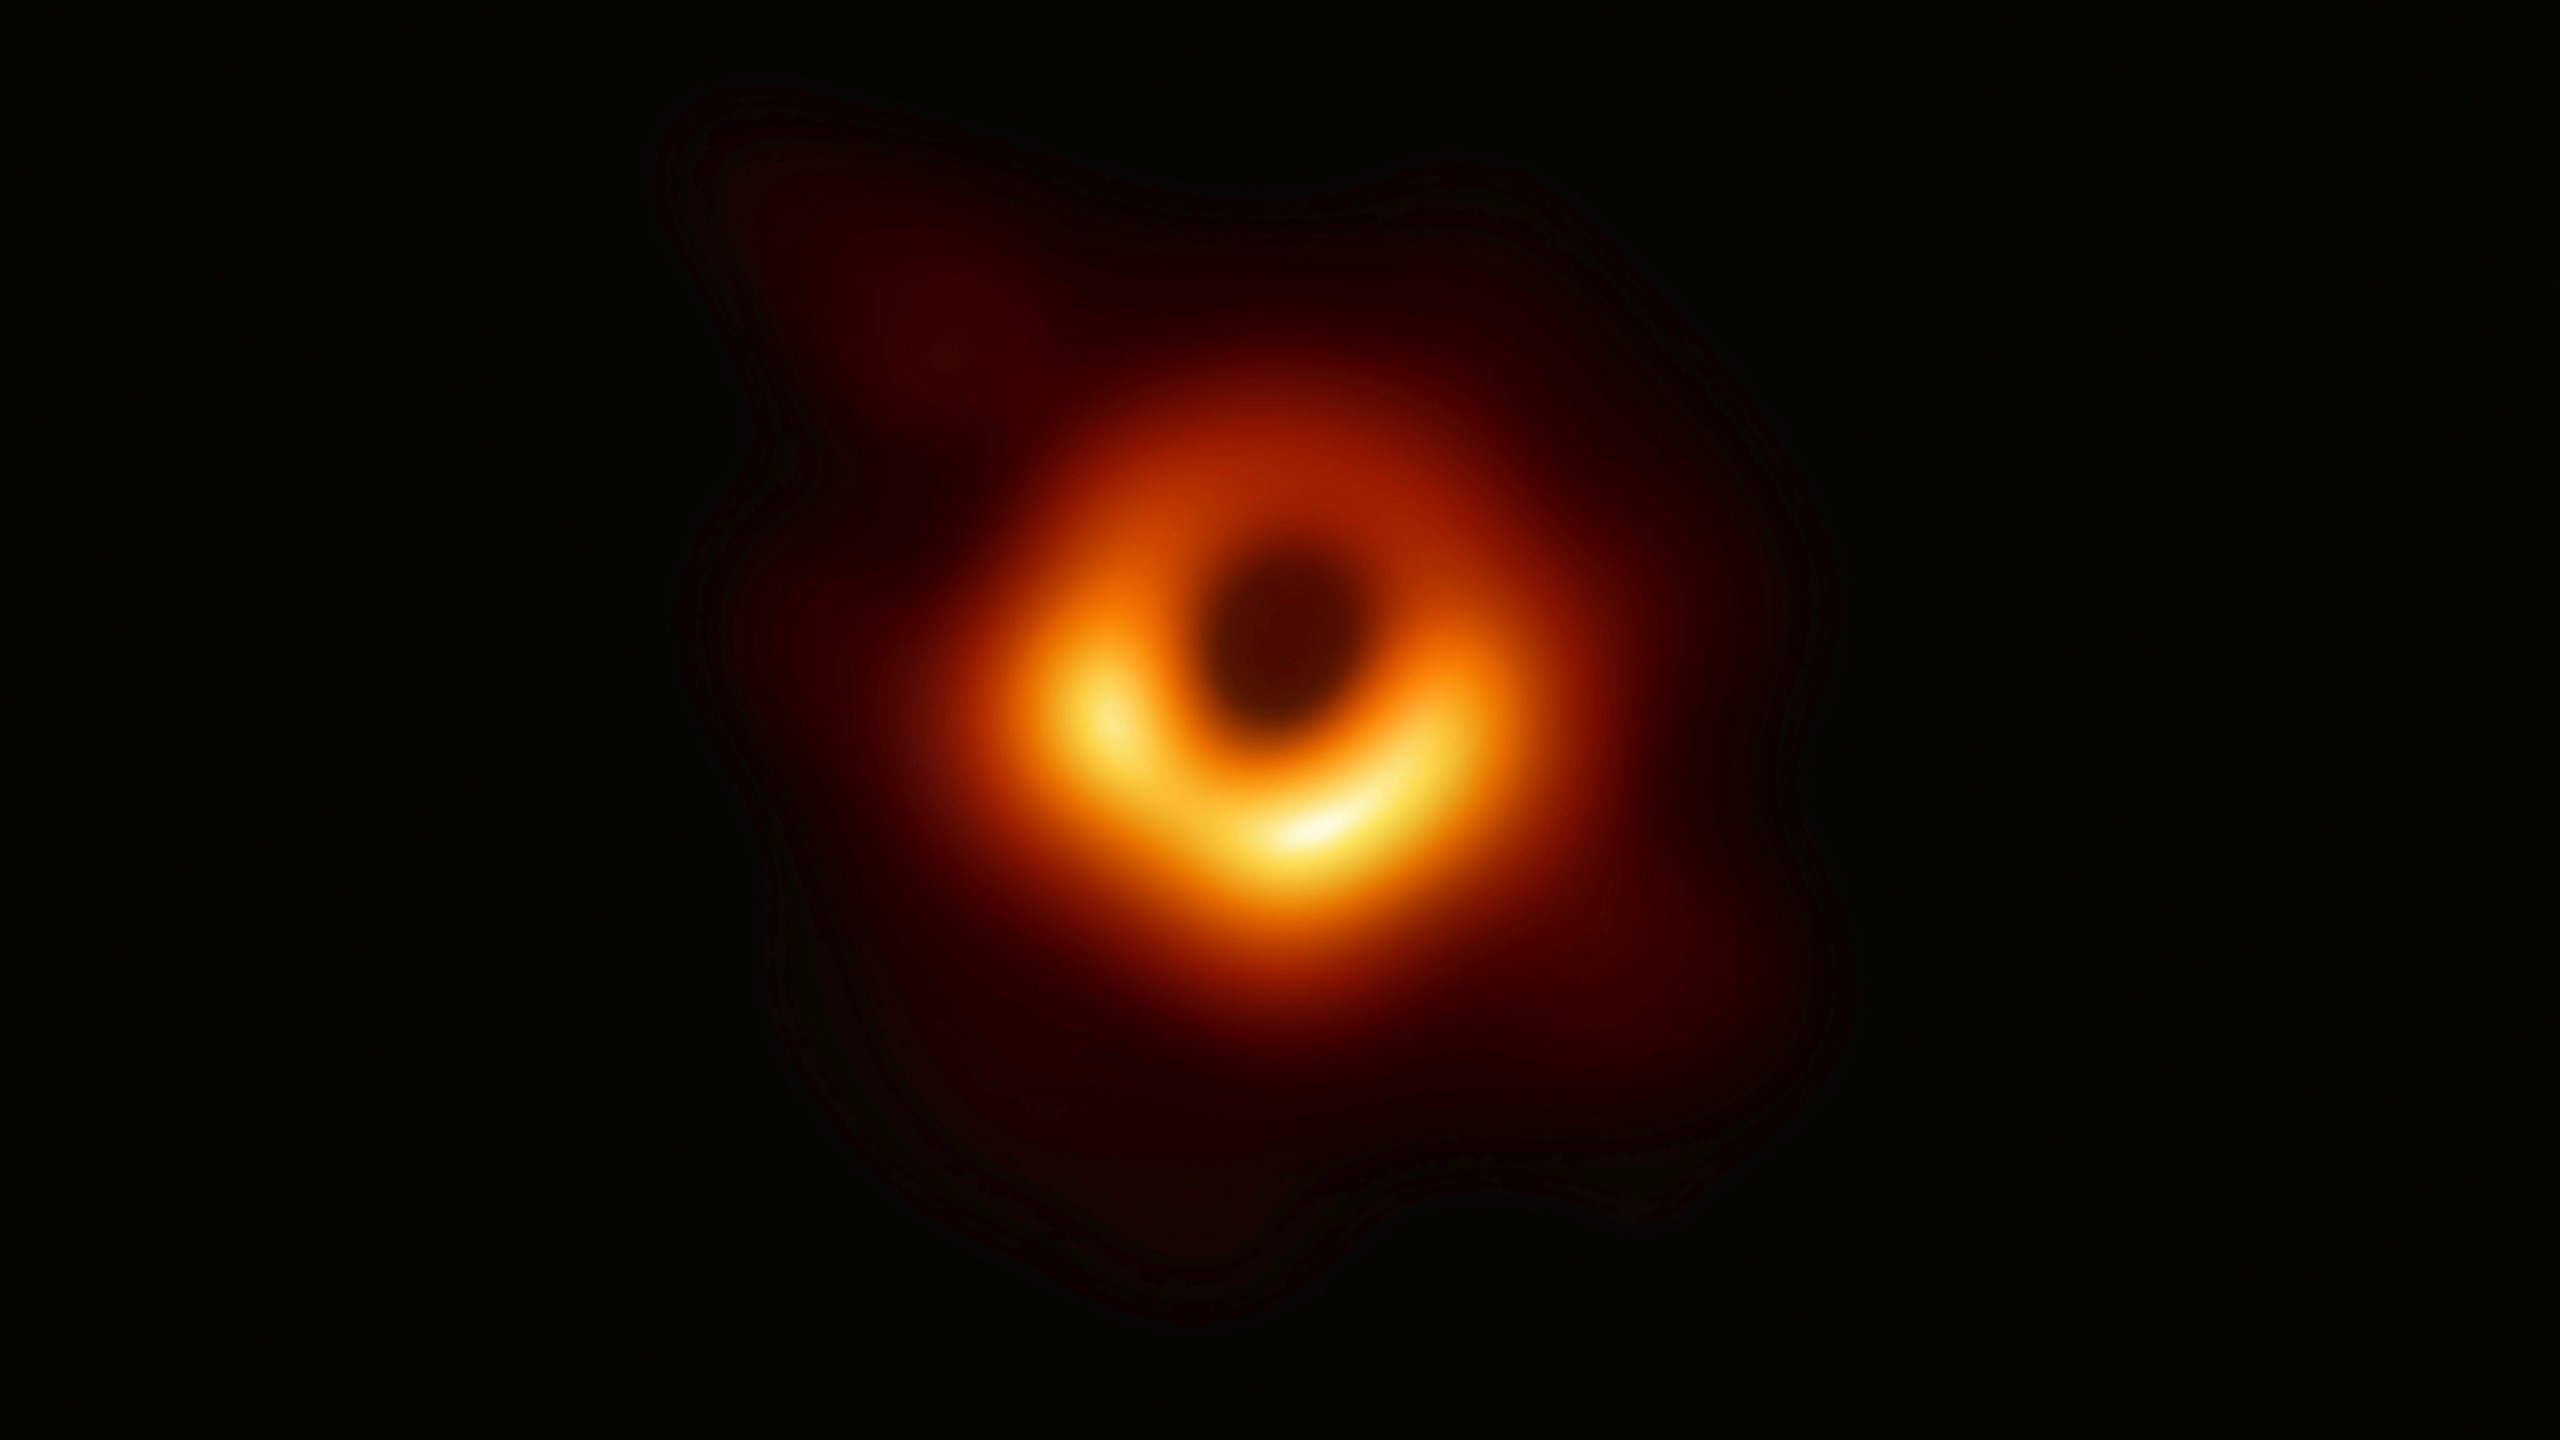 First_Image_of_a_Black_Hole_48599-159532.jpg28189958